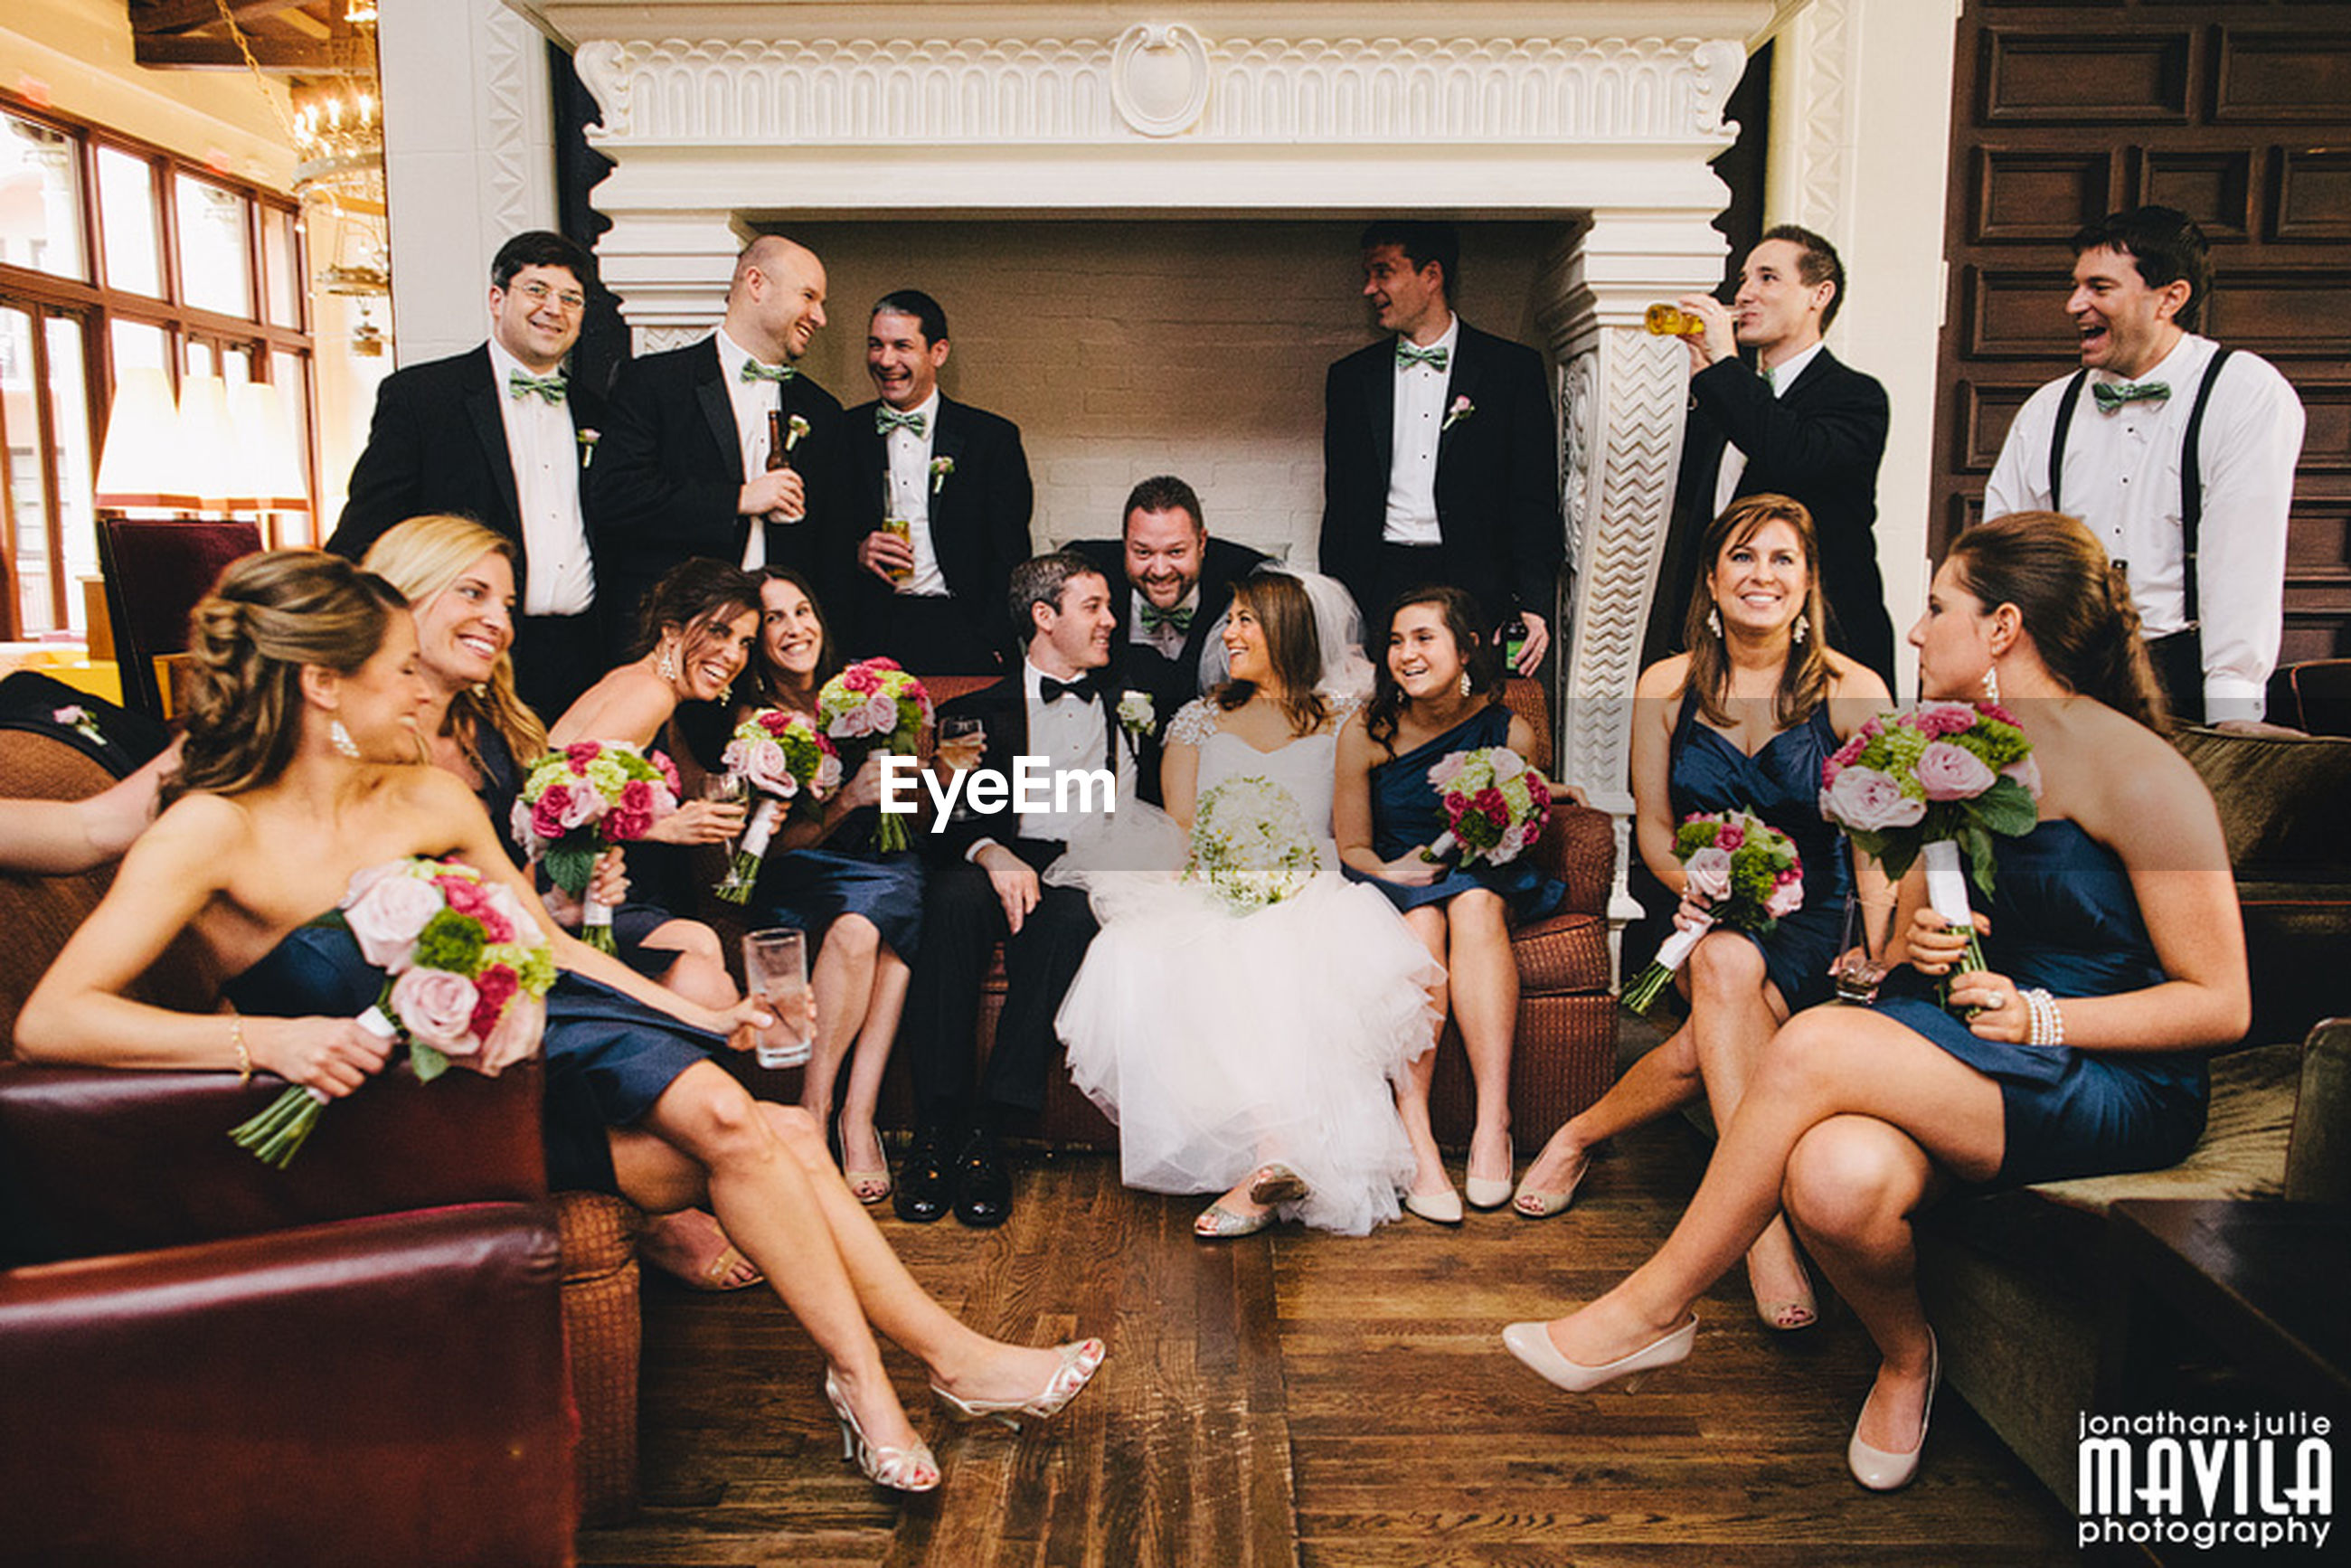 lifestyles, indoors, togetherness, leisure activity, young adult, young women, casual clothing, person, friendship, standing, happiness, front view, men, large group of people, fun, bonding